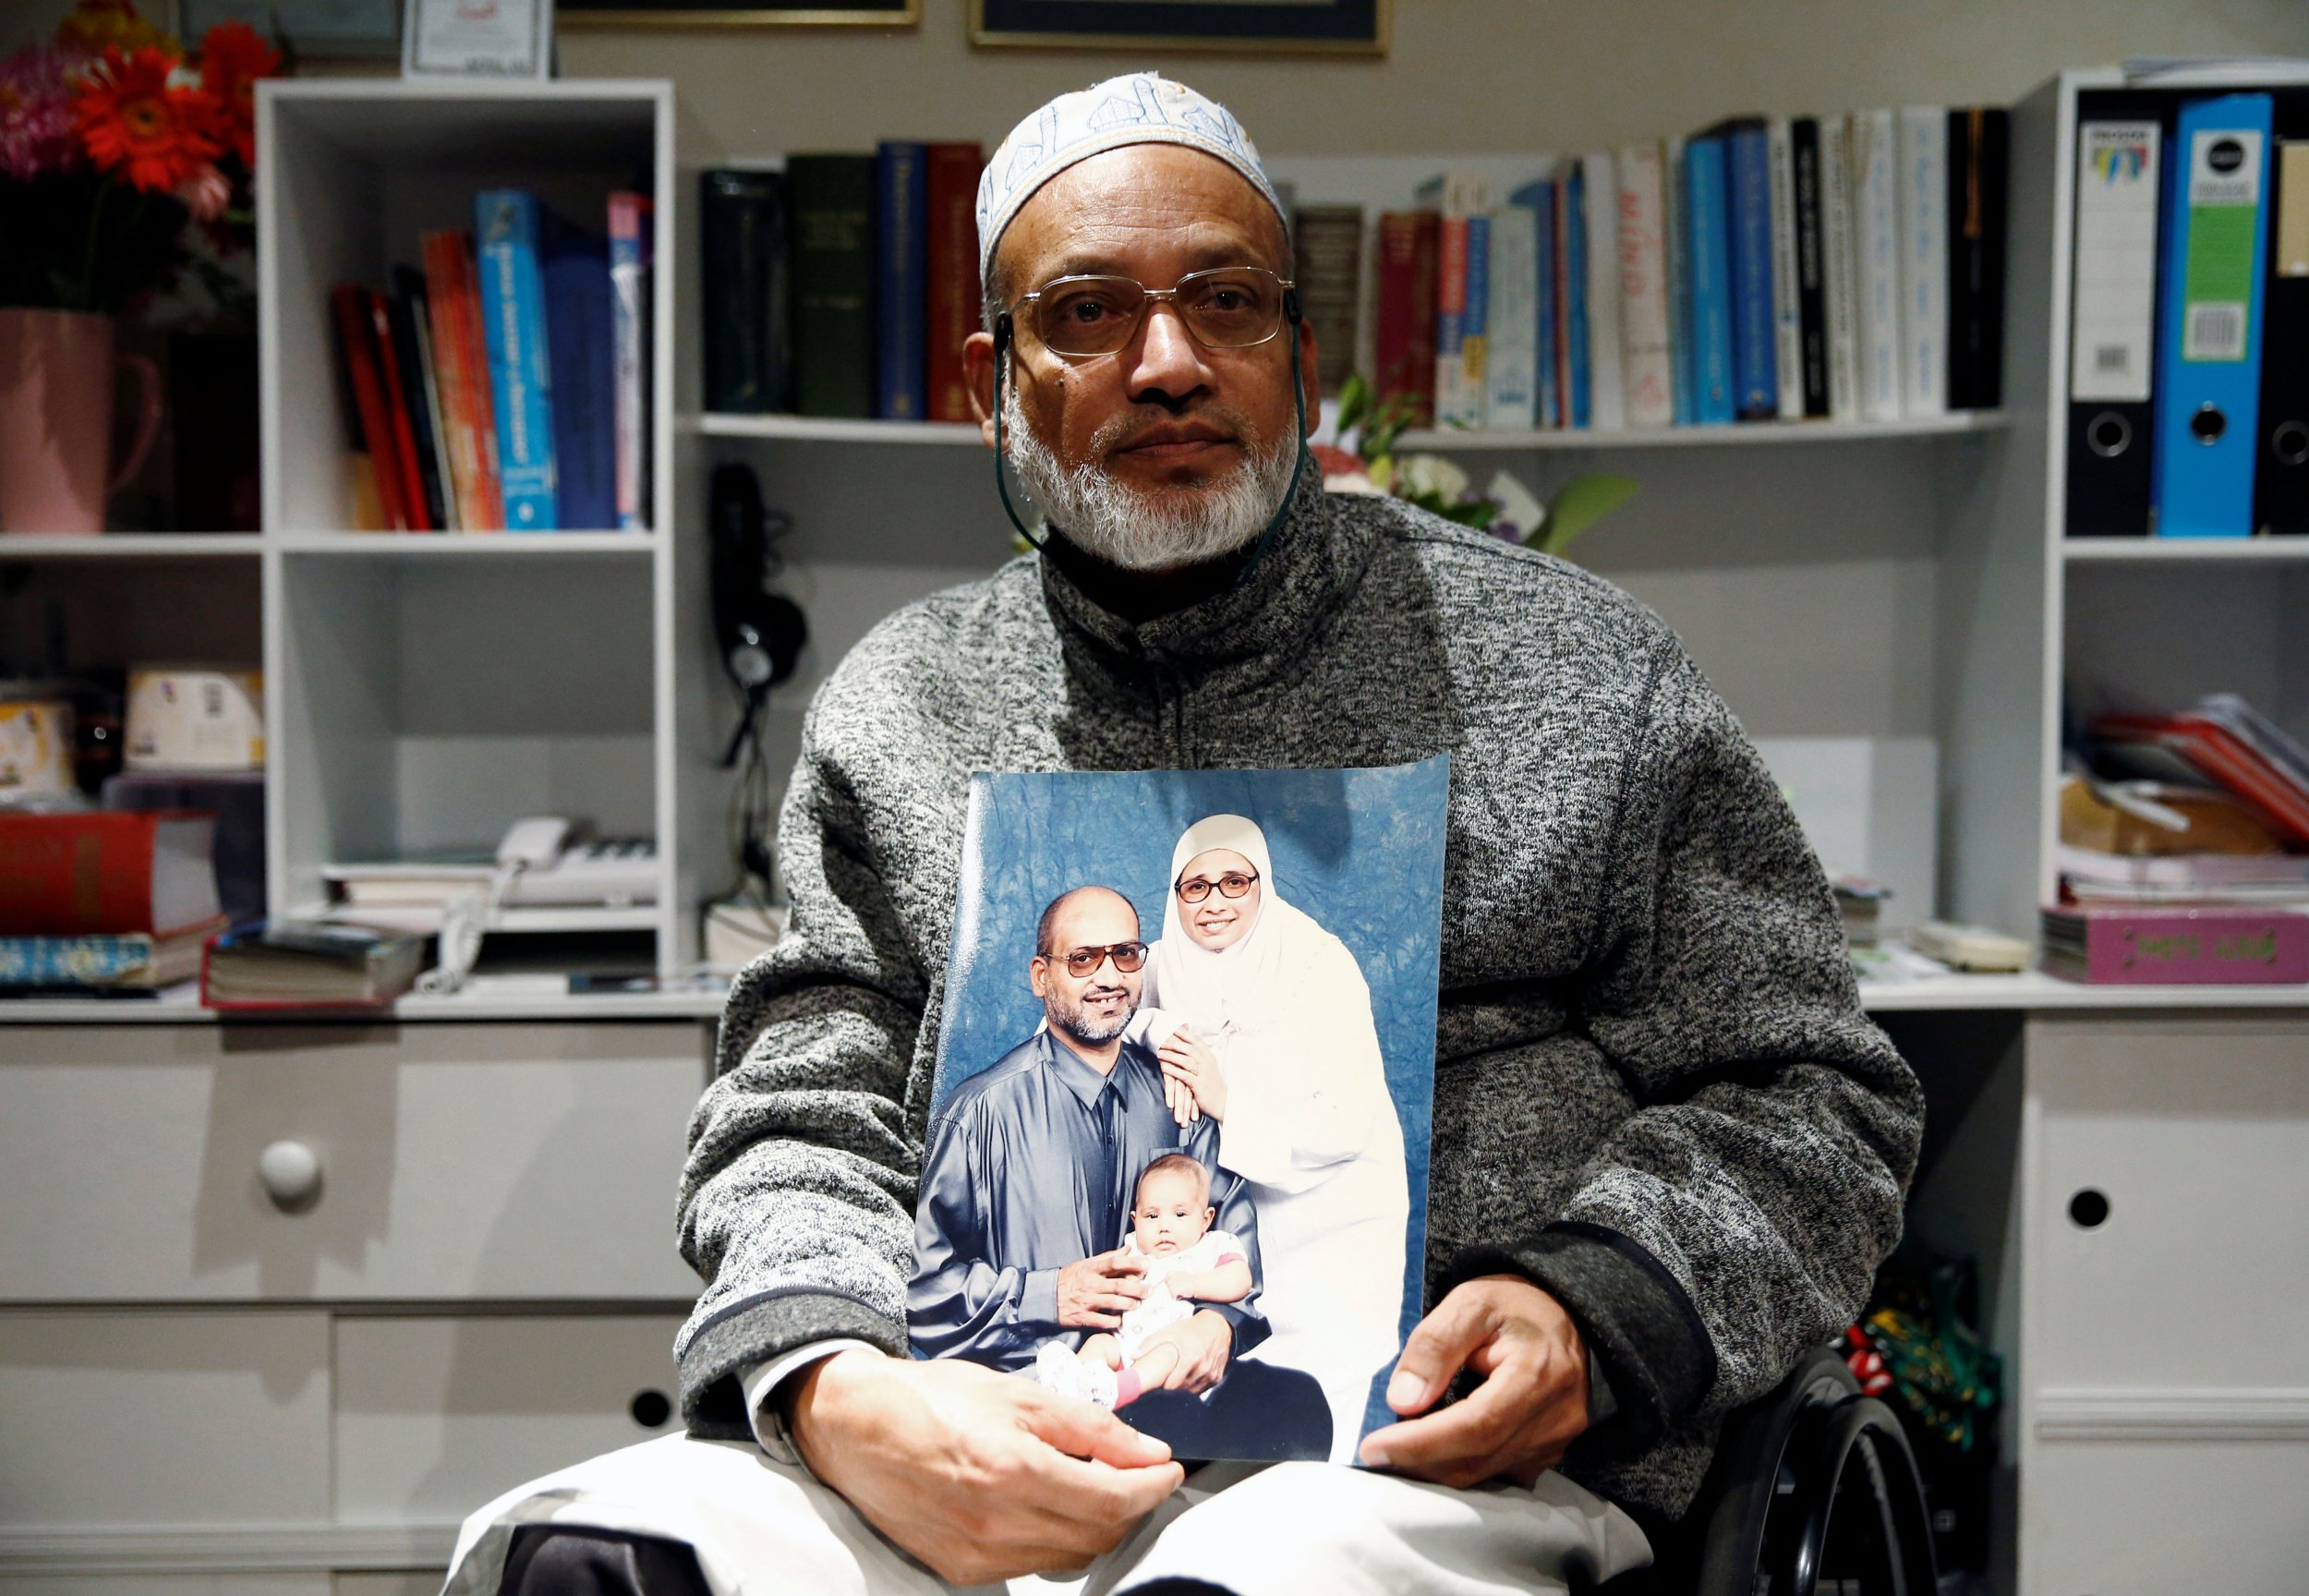 Al Noor mosque shooting survivor Farhid Ahmed poses with a photo of his wife Husna, who was killed in the attack, after an interview with Reuters in Christchurch, New Zealand March 18, 2019. Picture taken March 18, 2019. REUTERS/Edgar Su